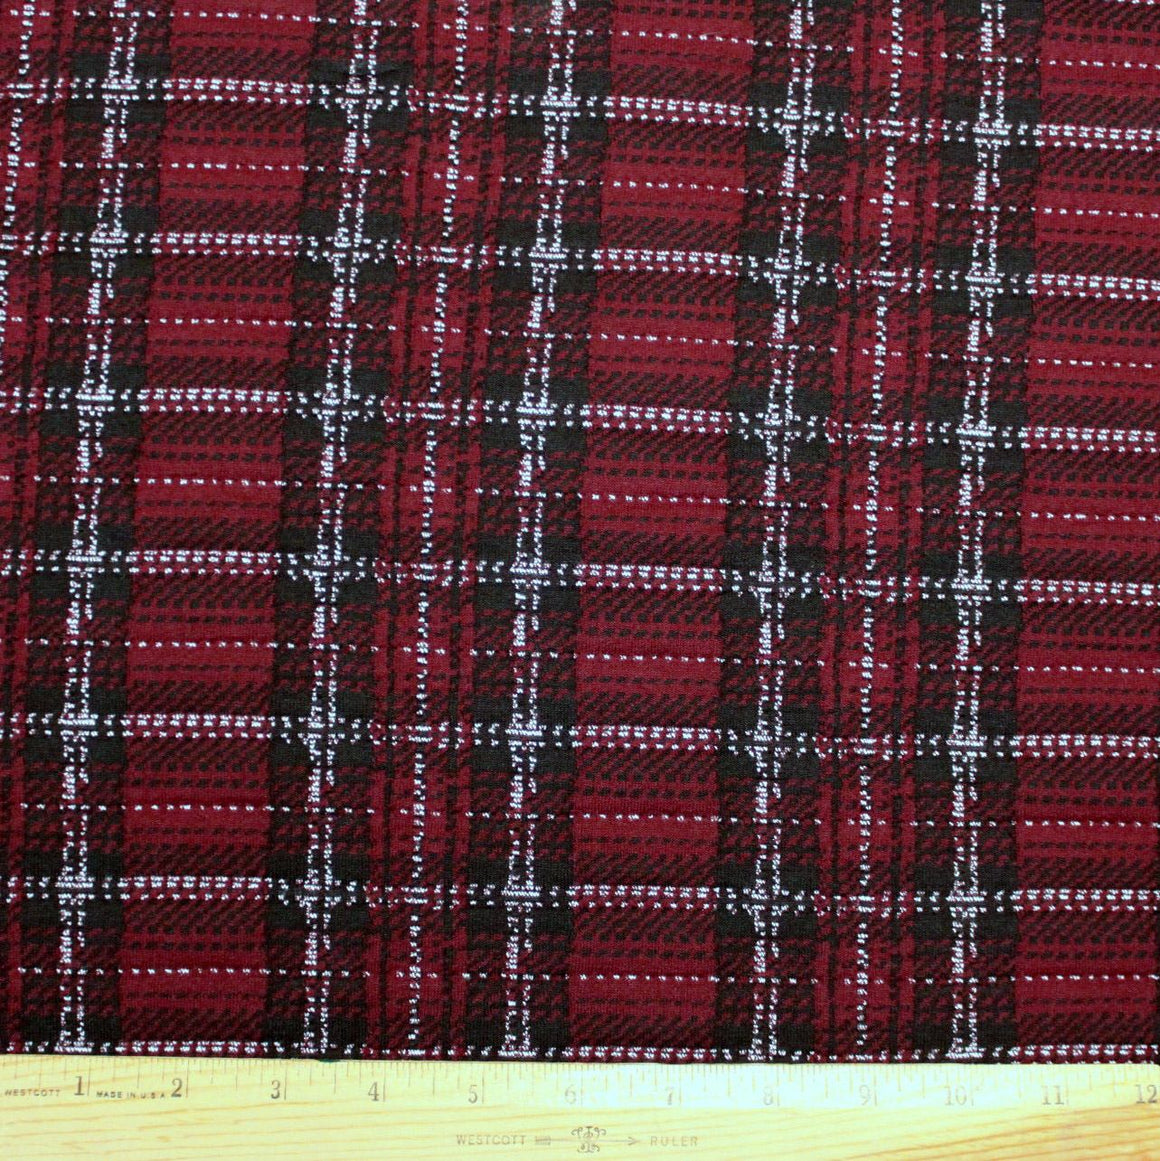 Burgundy Black and White Plaid Double Knit, 1 Yard - Raspberry Creek Fabrics